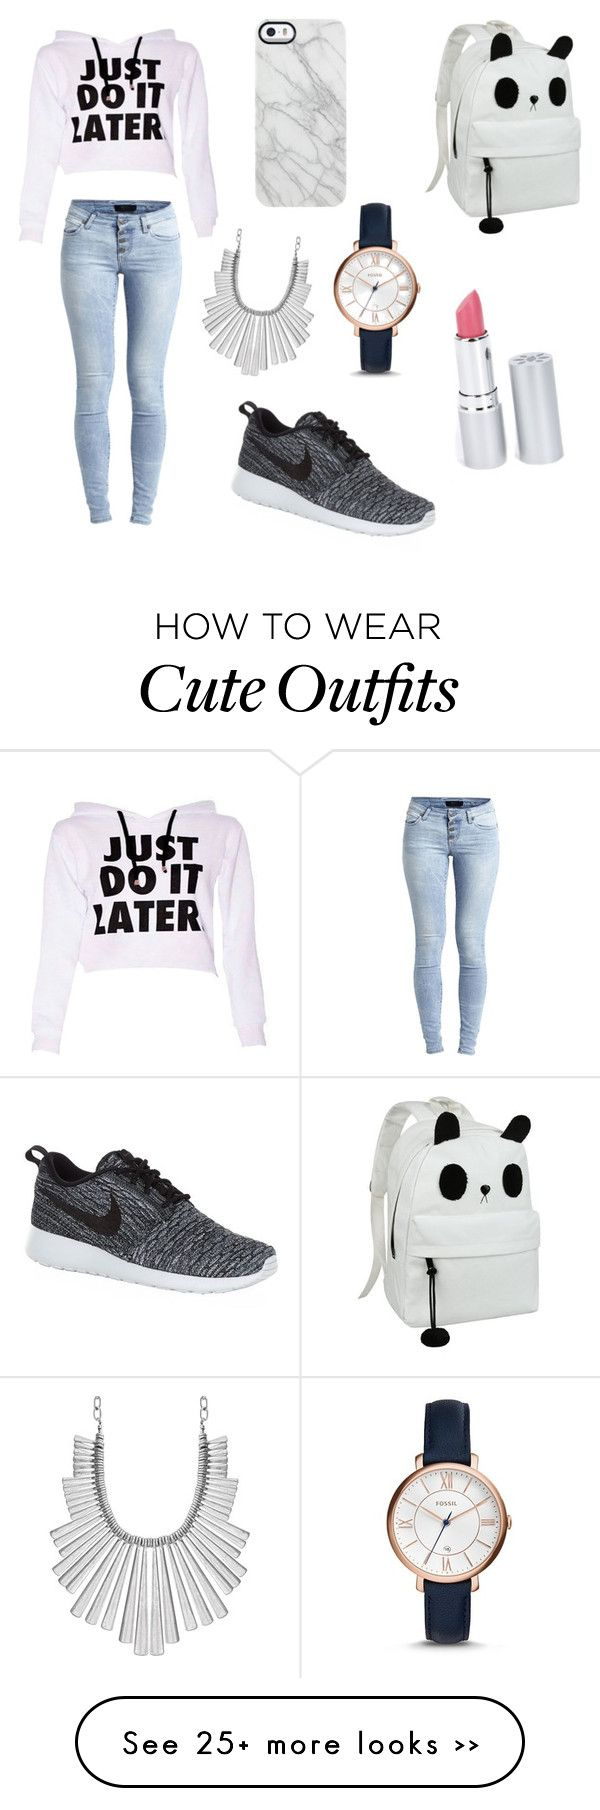 """chill school outfit"" by tjvxxi on Polyvore featuring Object Collectors Item, NIKE, Uncommon, FOSSIL, Lucky Brand and HoneyBee Gardens"